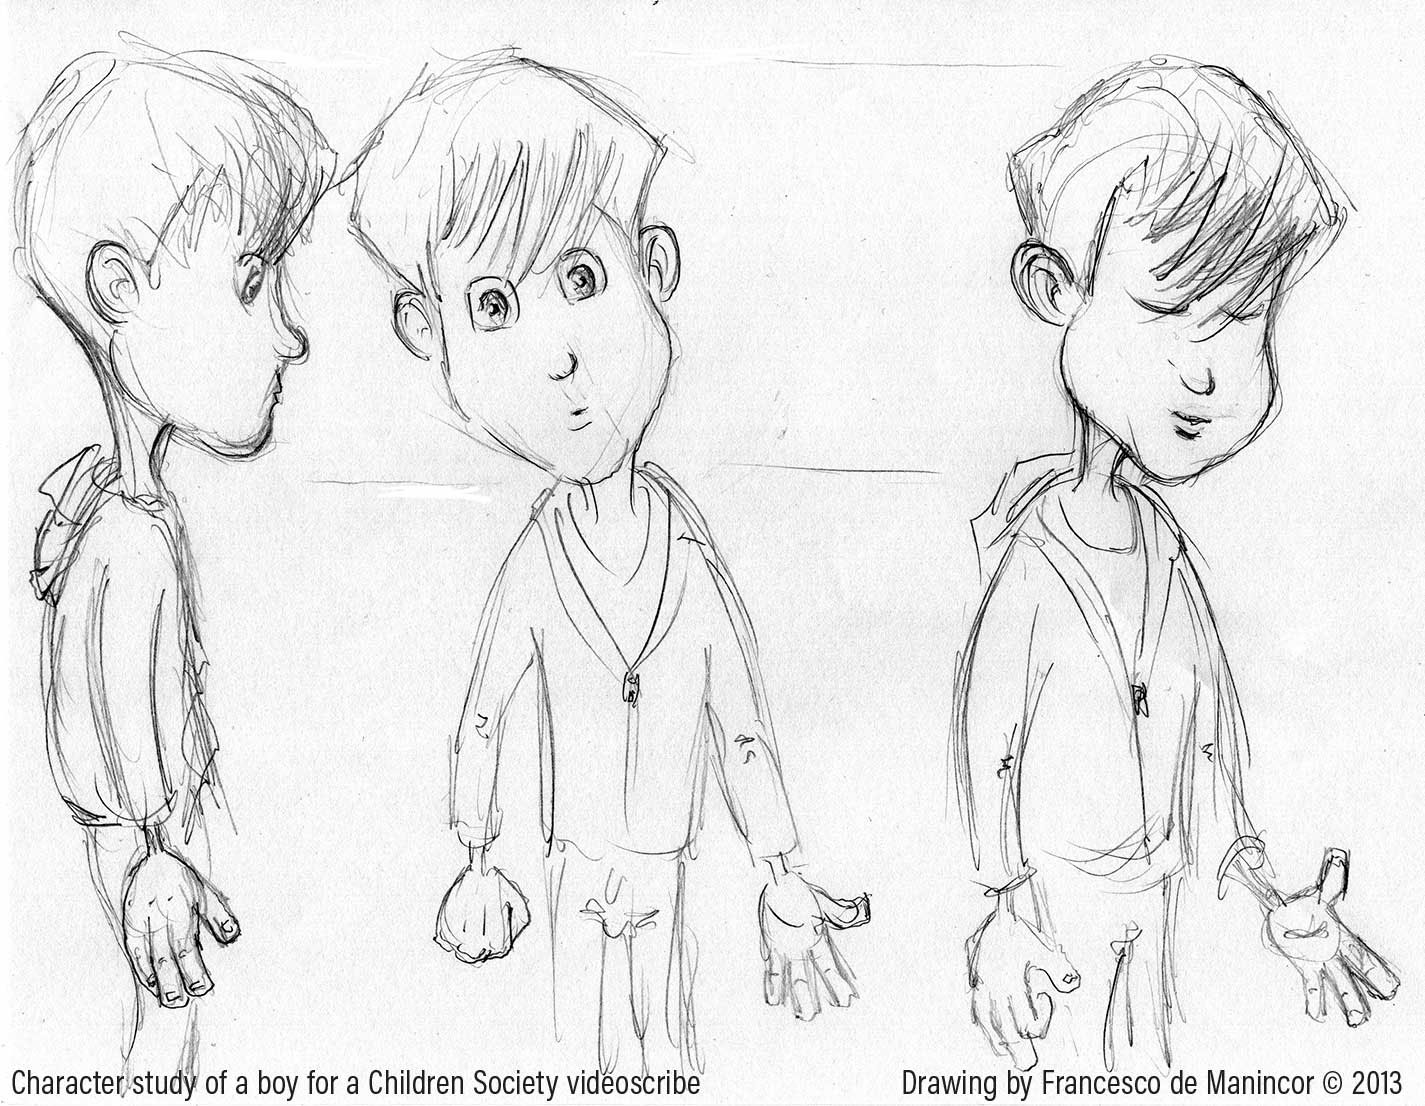 Character study of a boy for a Children Society project